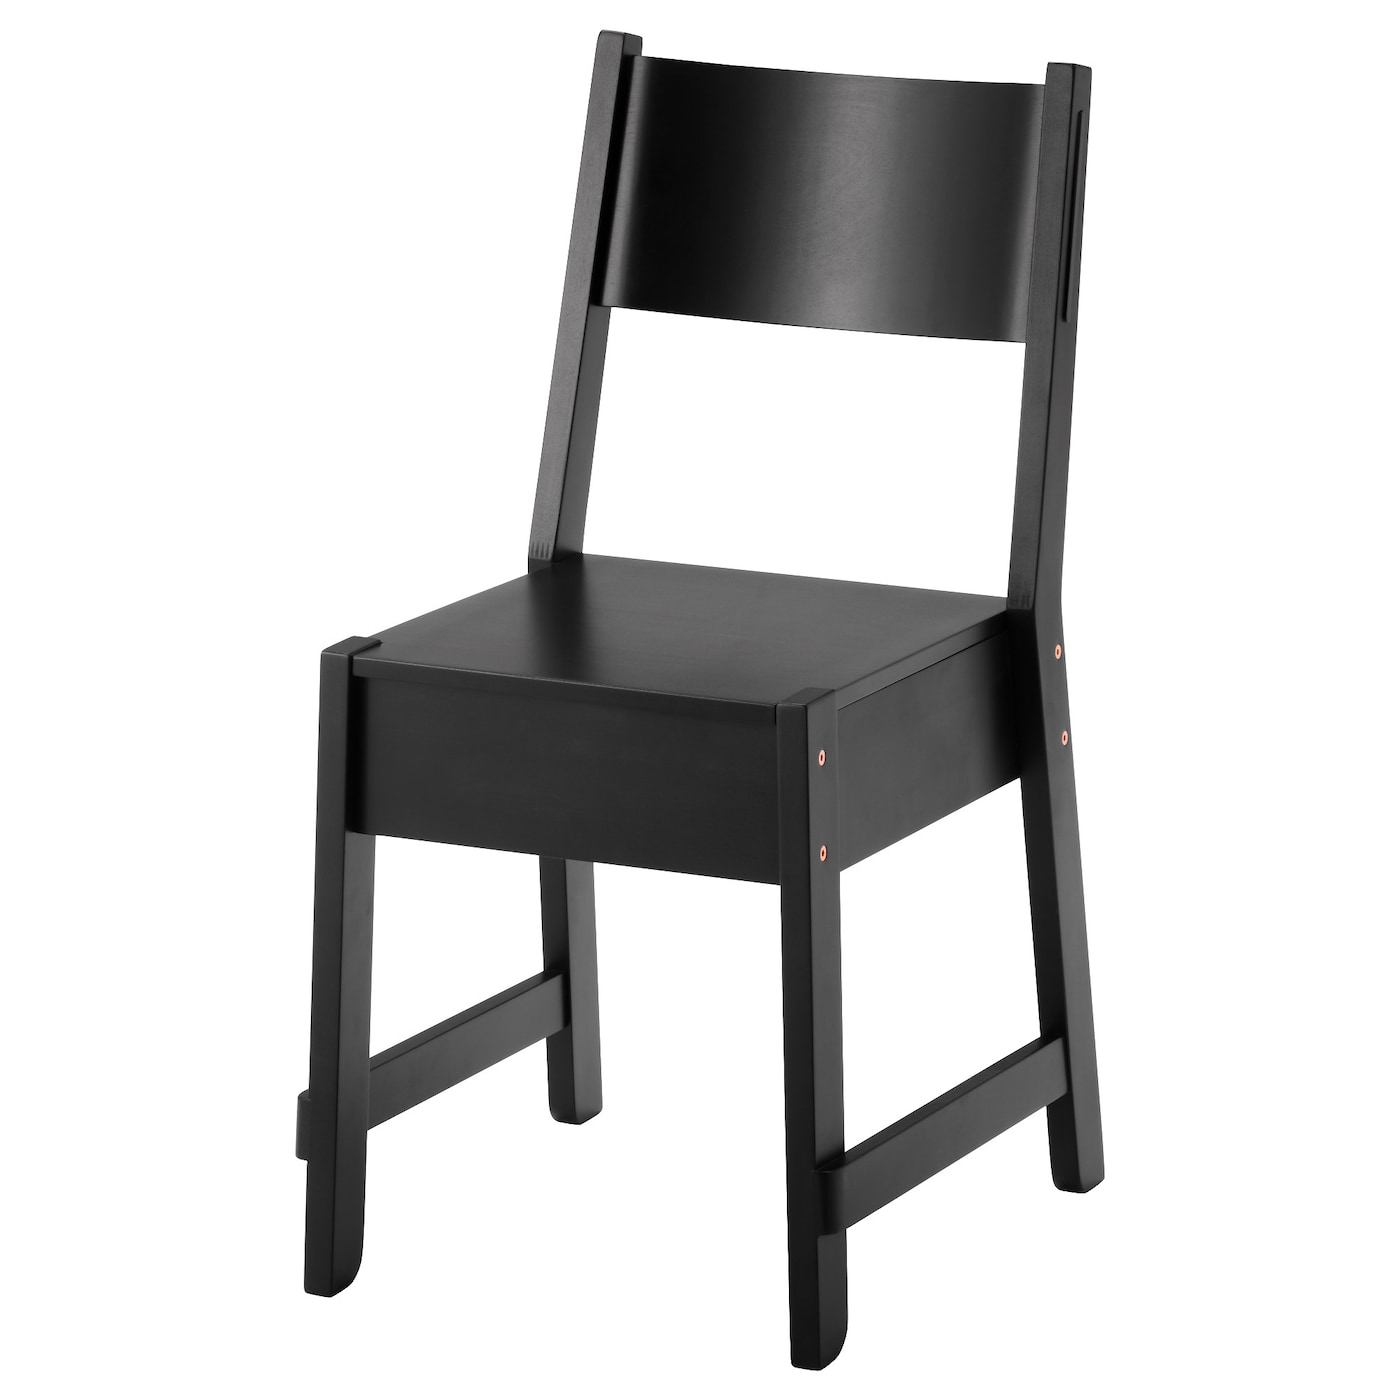 Ikea NorrÅker Chair Durable And Hard Wearing Meets The Requirements On Furniture For Public